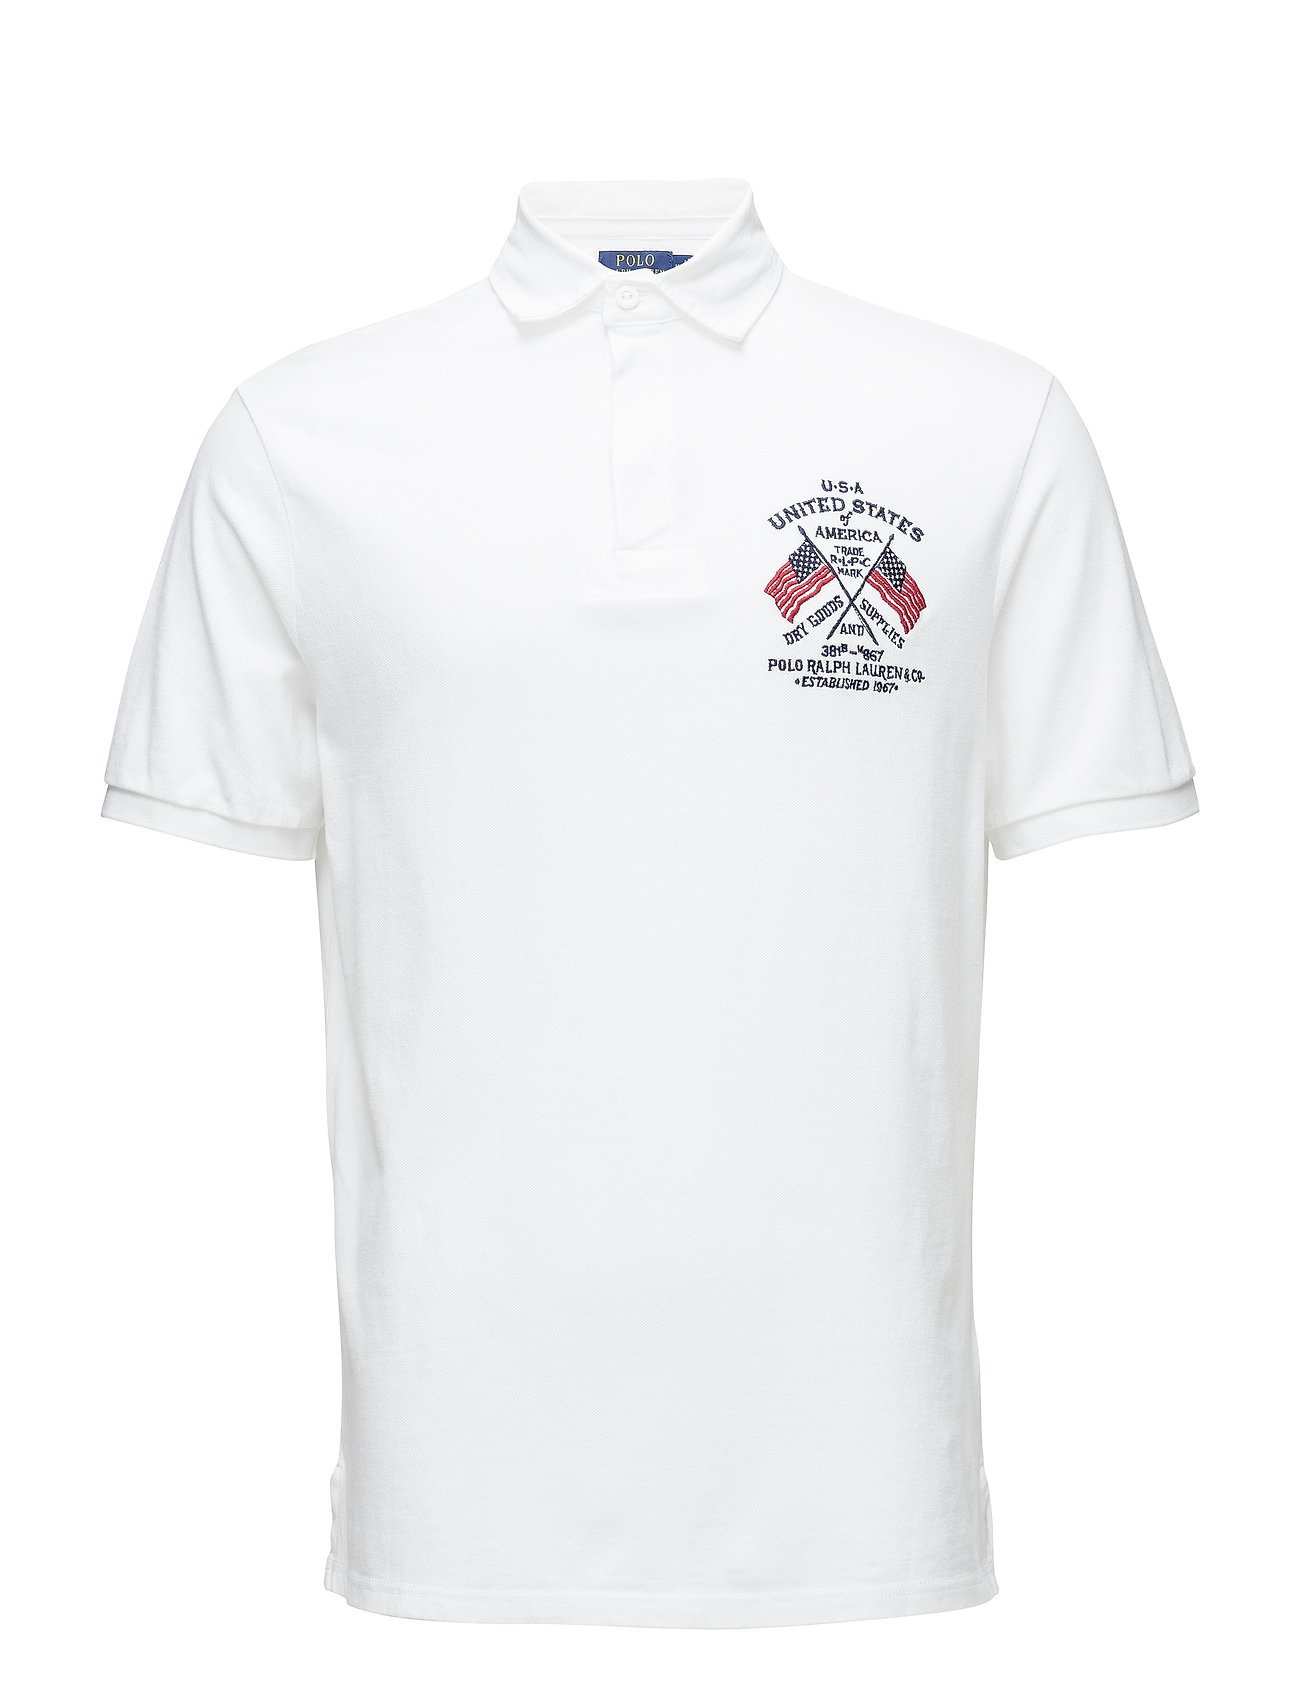 Polo Ralph Lauren SSRUGBYM4-SHORTSLEEVE-KNIT - WHITE